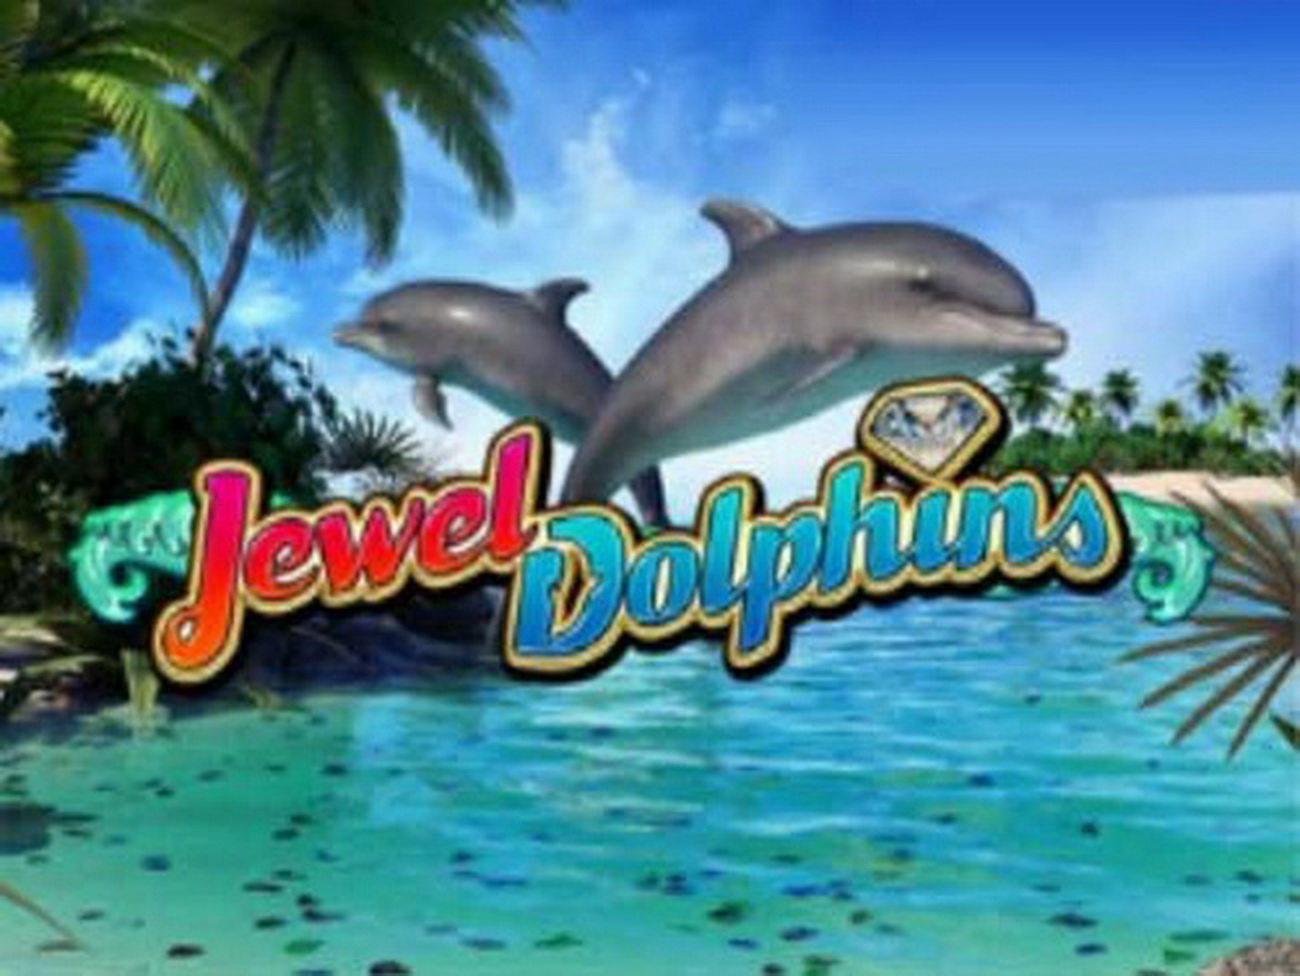 The Jewel Dolphin Online Slot Demo Game by CR Games